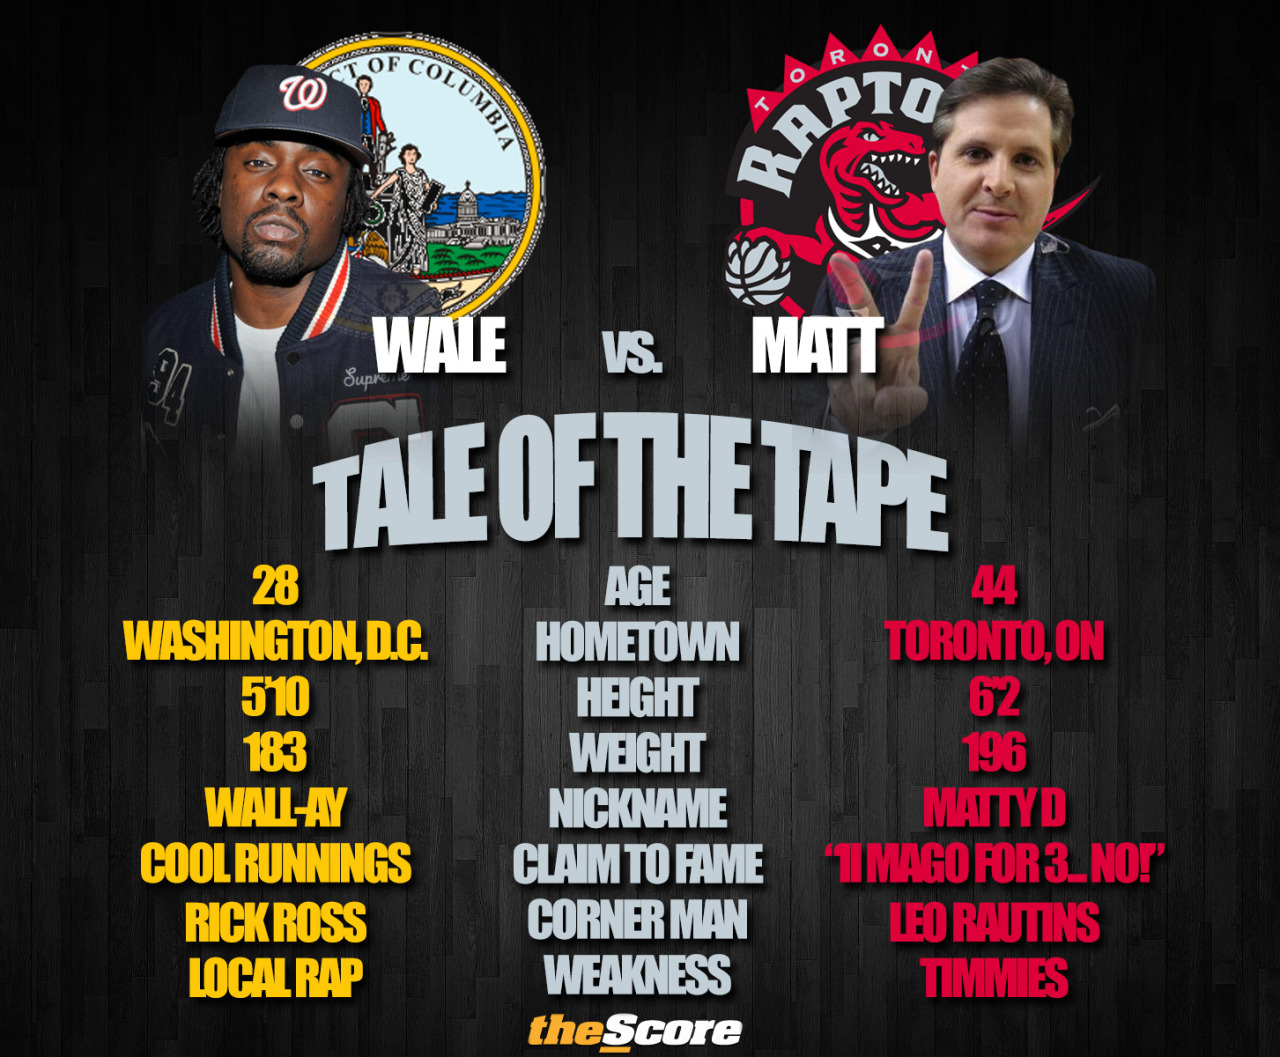 Tale of the Tape: Matt Devlin vs. @Wale. #RTZ